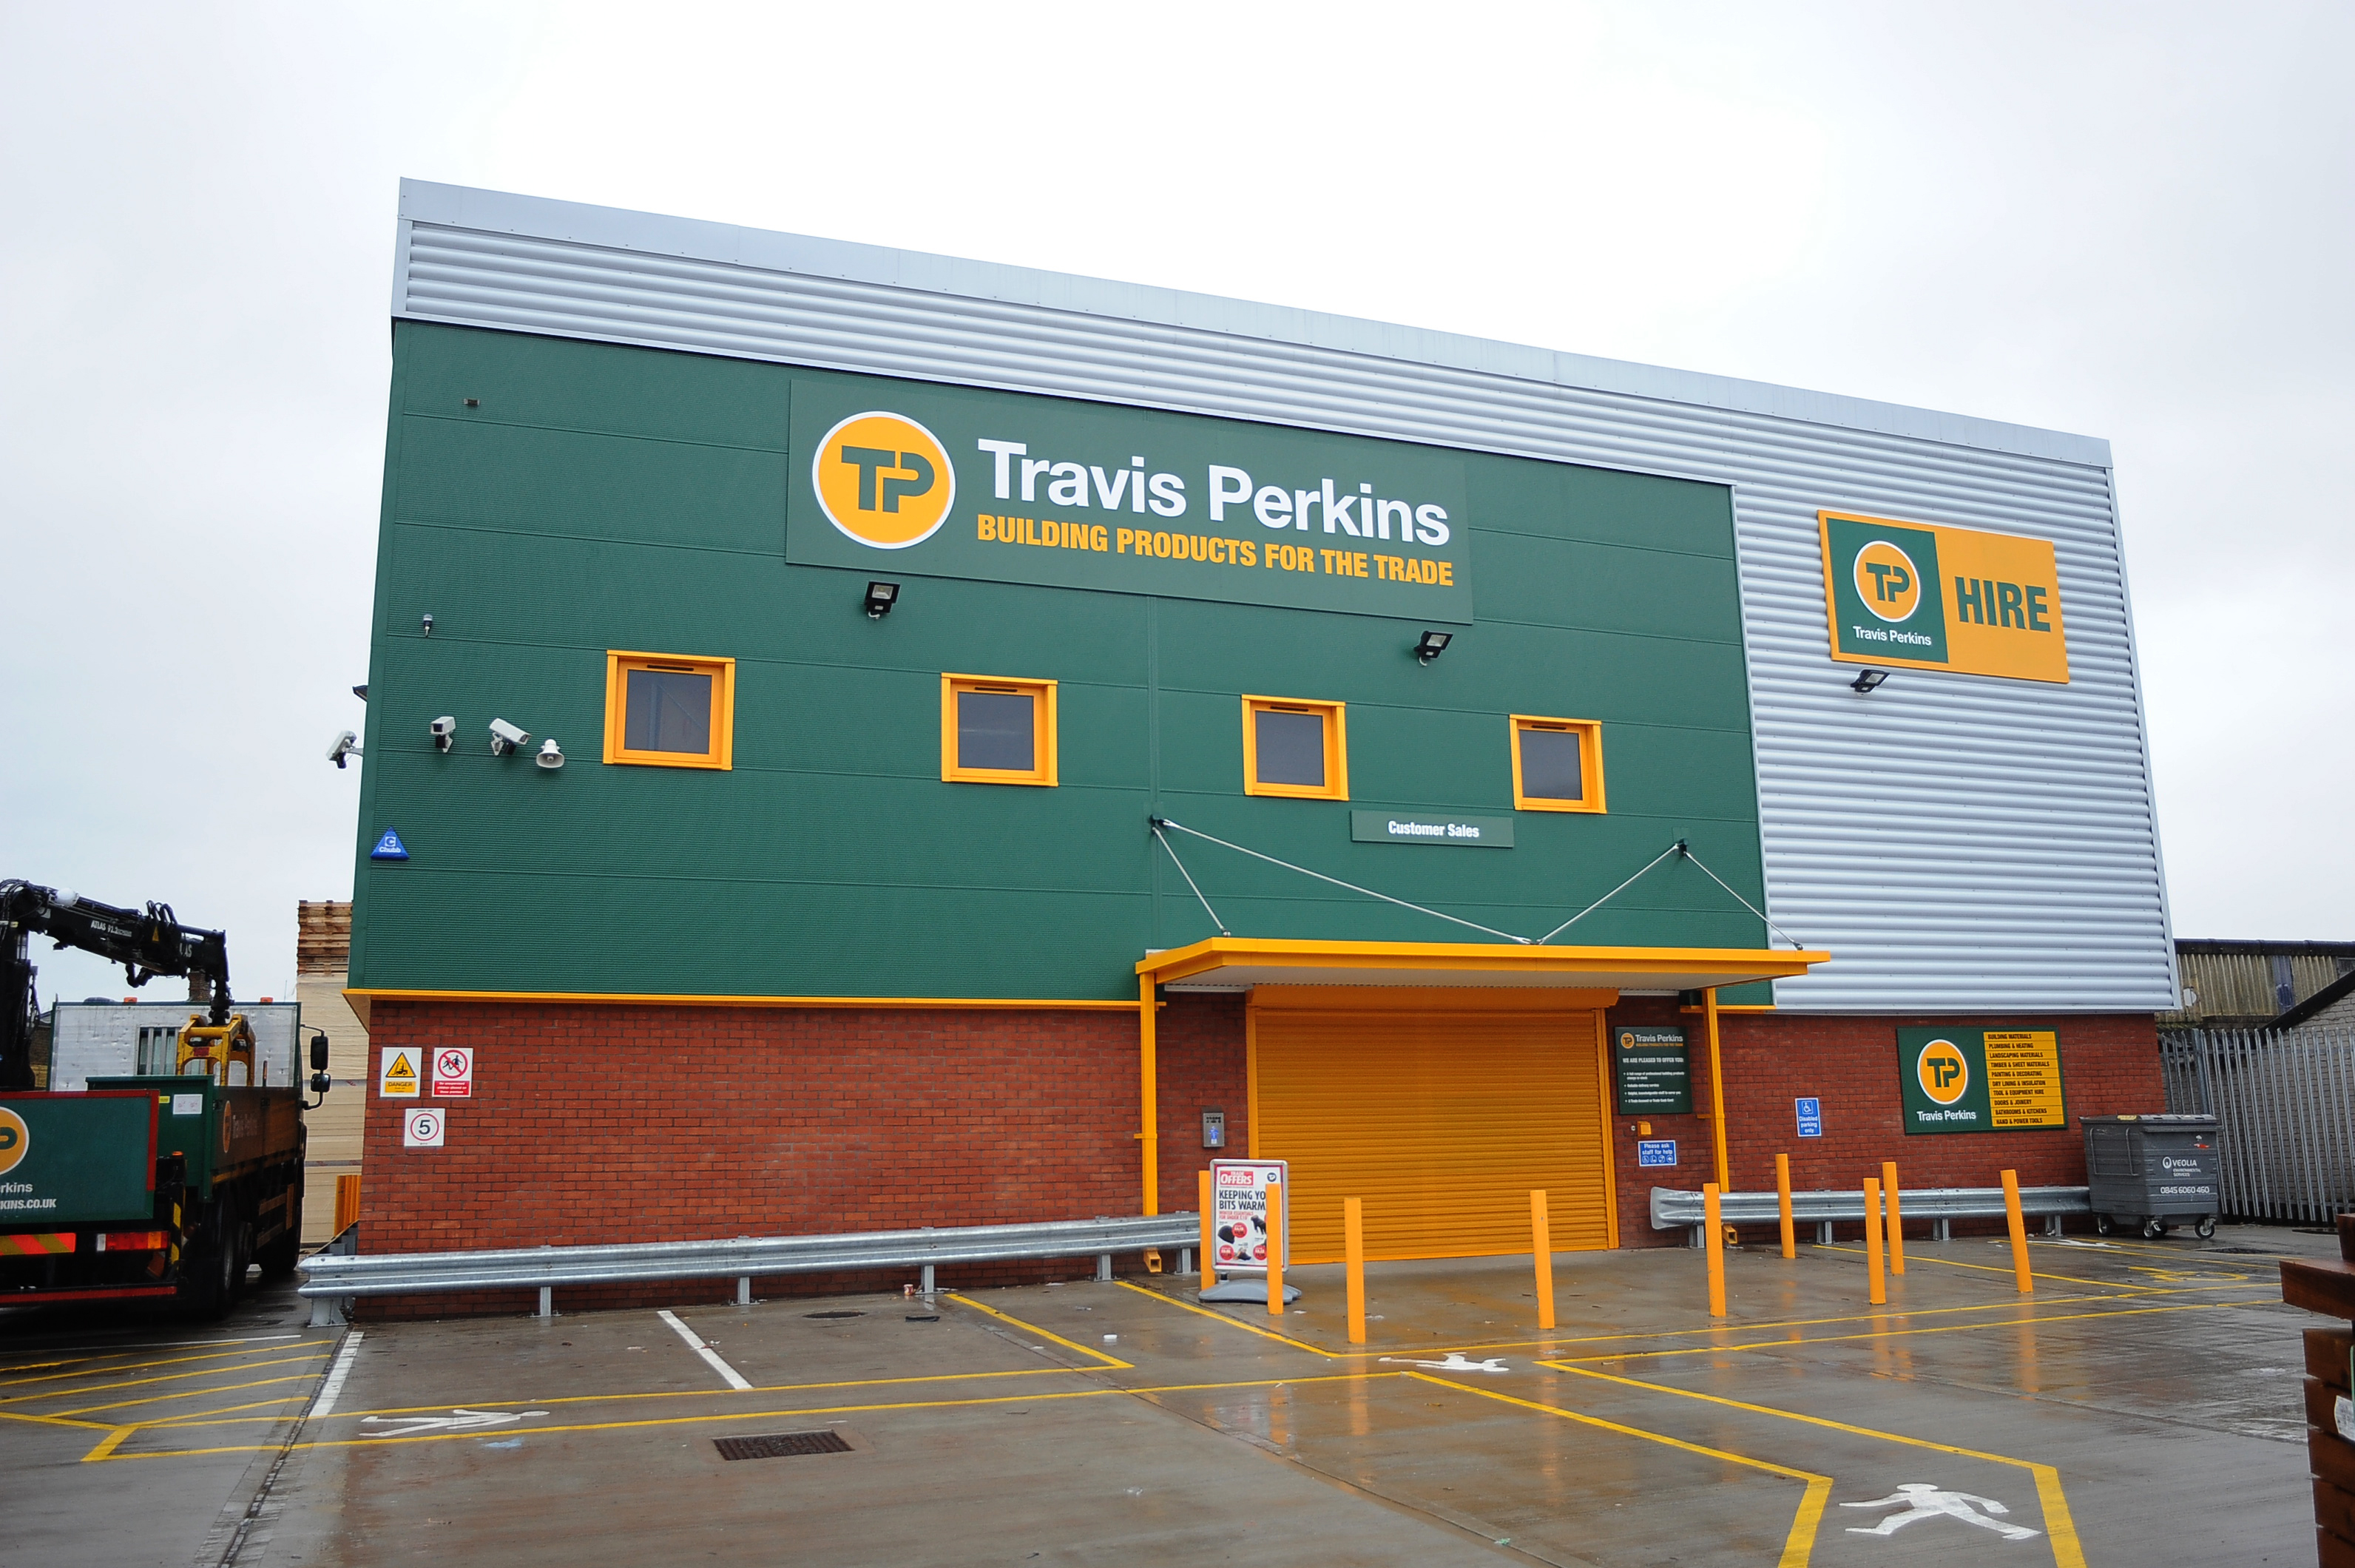 Travis Perkins Rkc Industrial Roofing Amp Cladding Ltd Are